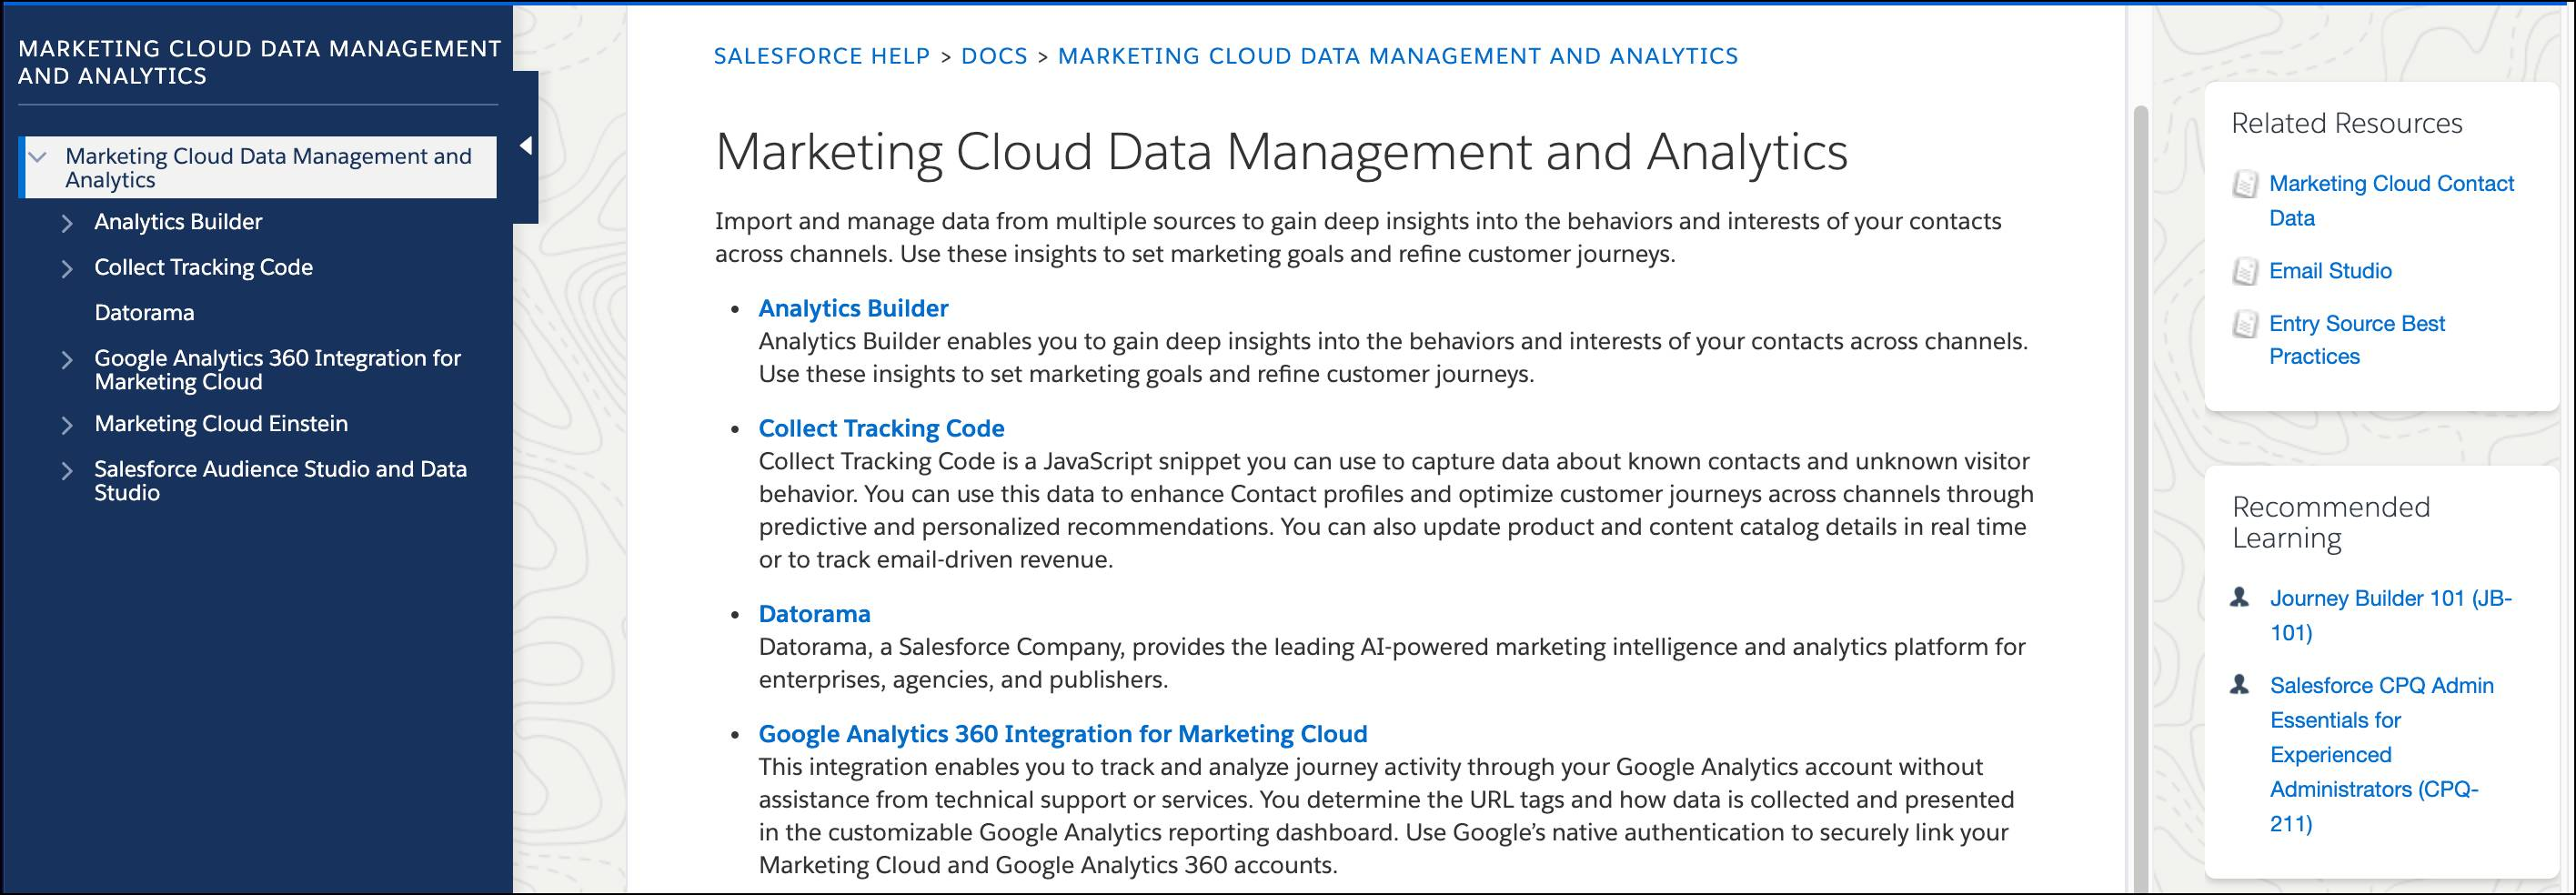 Marketing Cloud Data Management and Analytics help page.